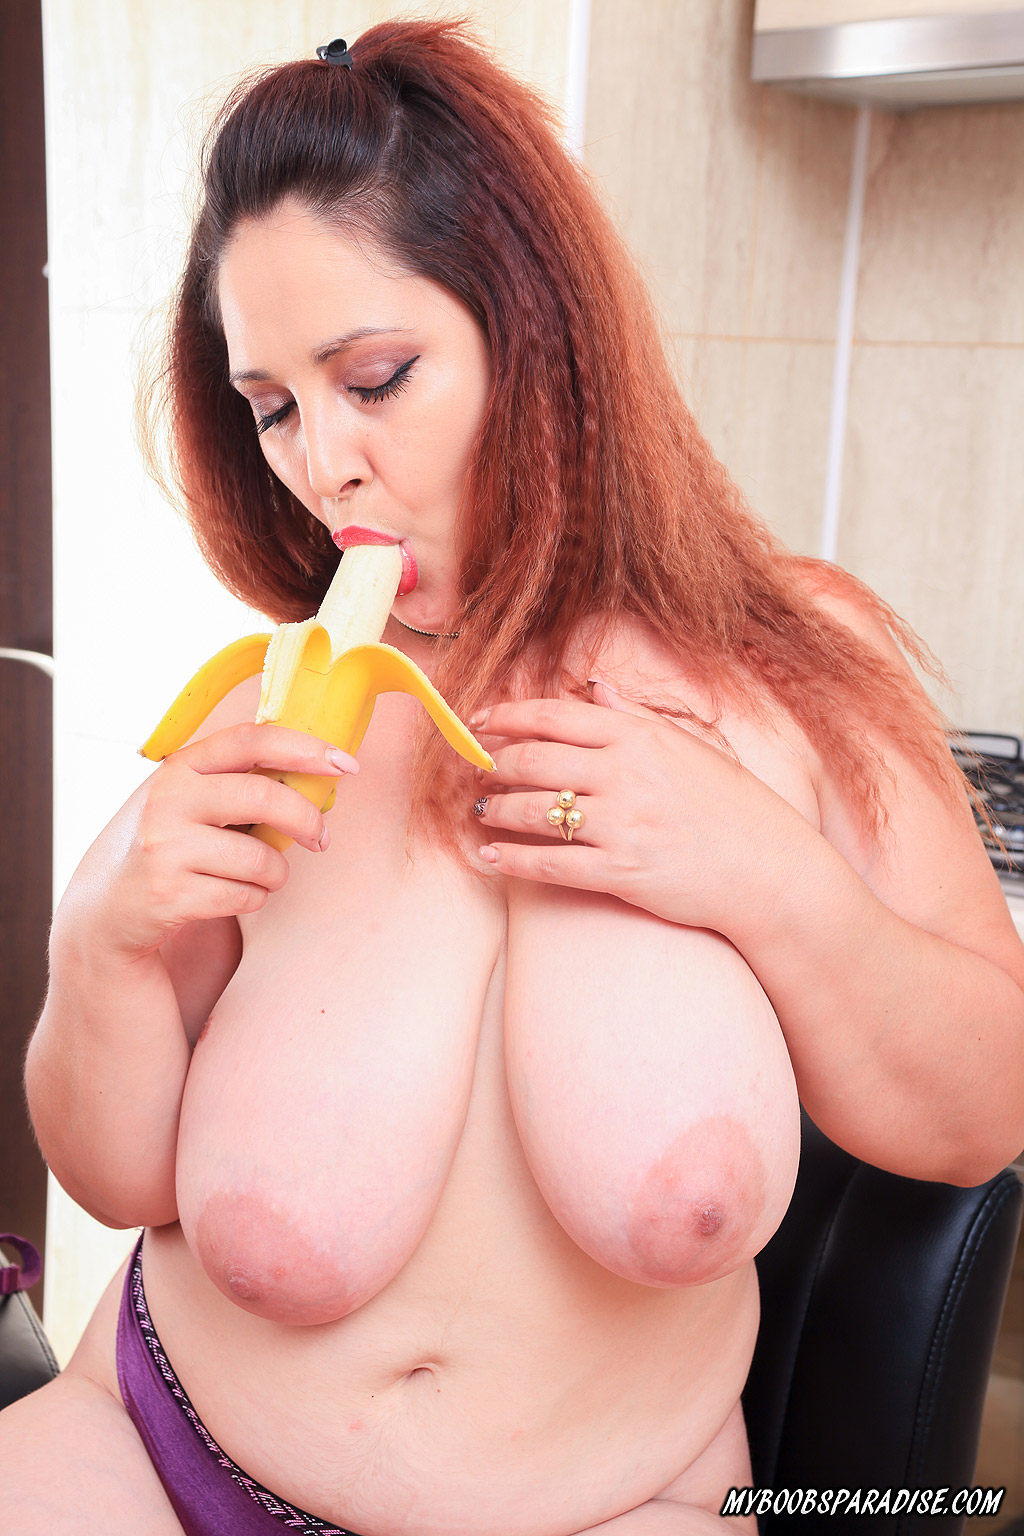 Busty Maria Teasing with a Banana